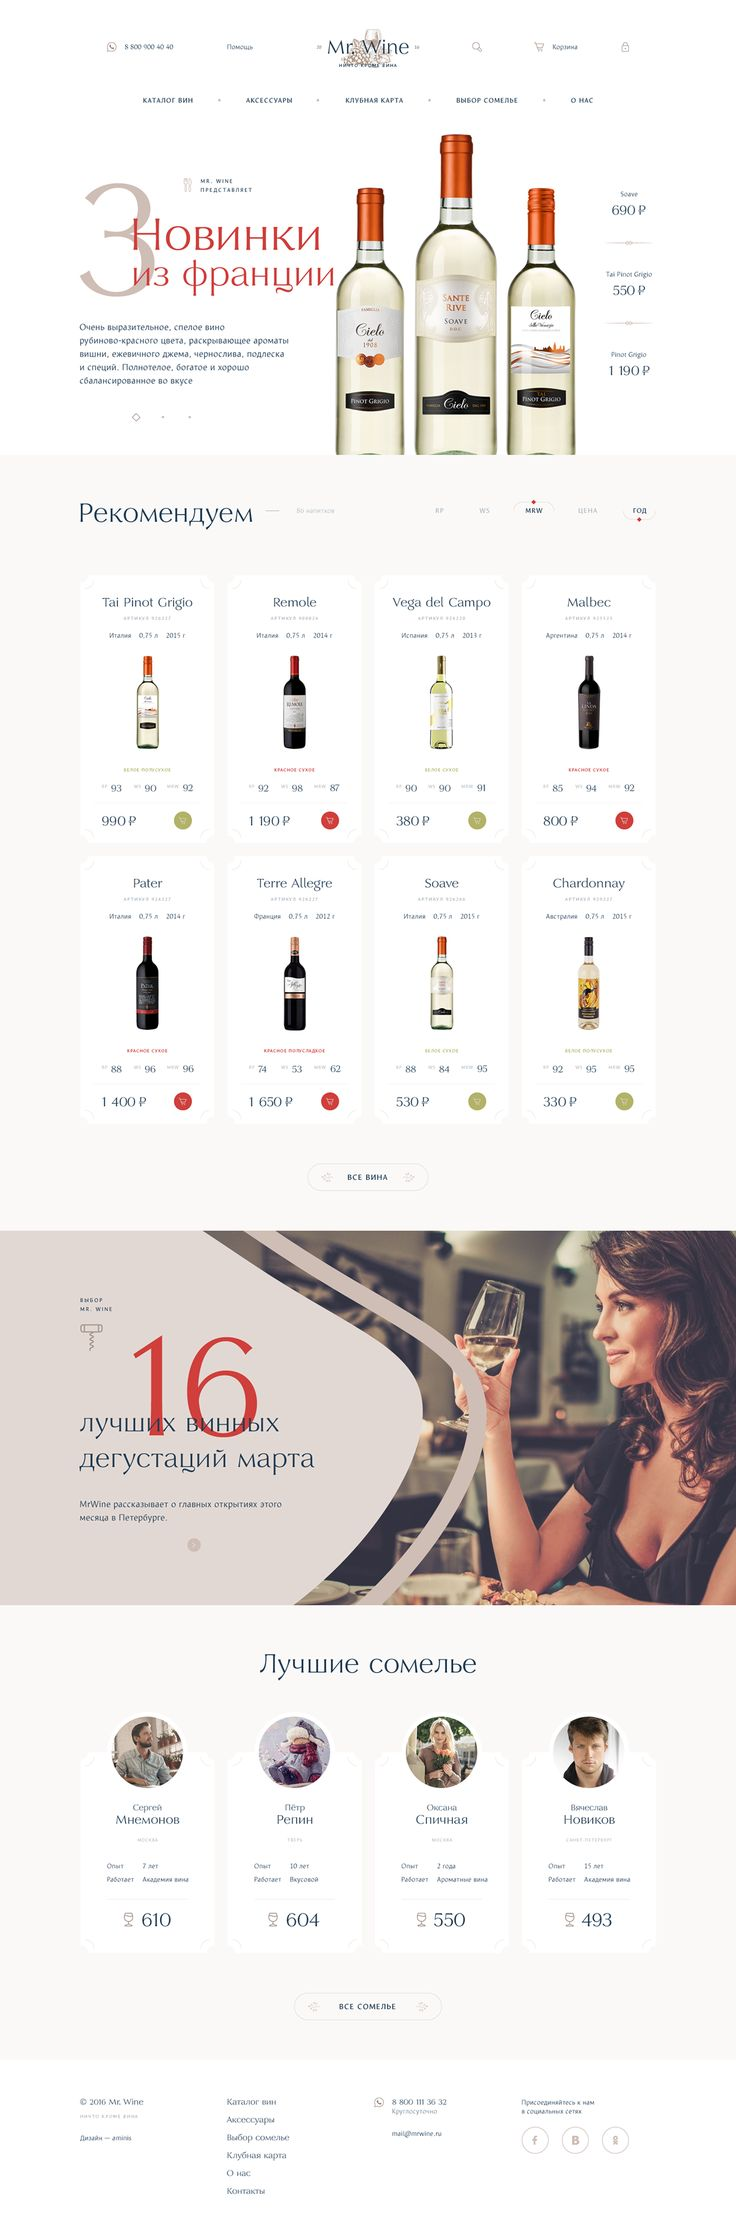 Design for wines online store.